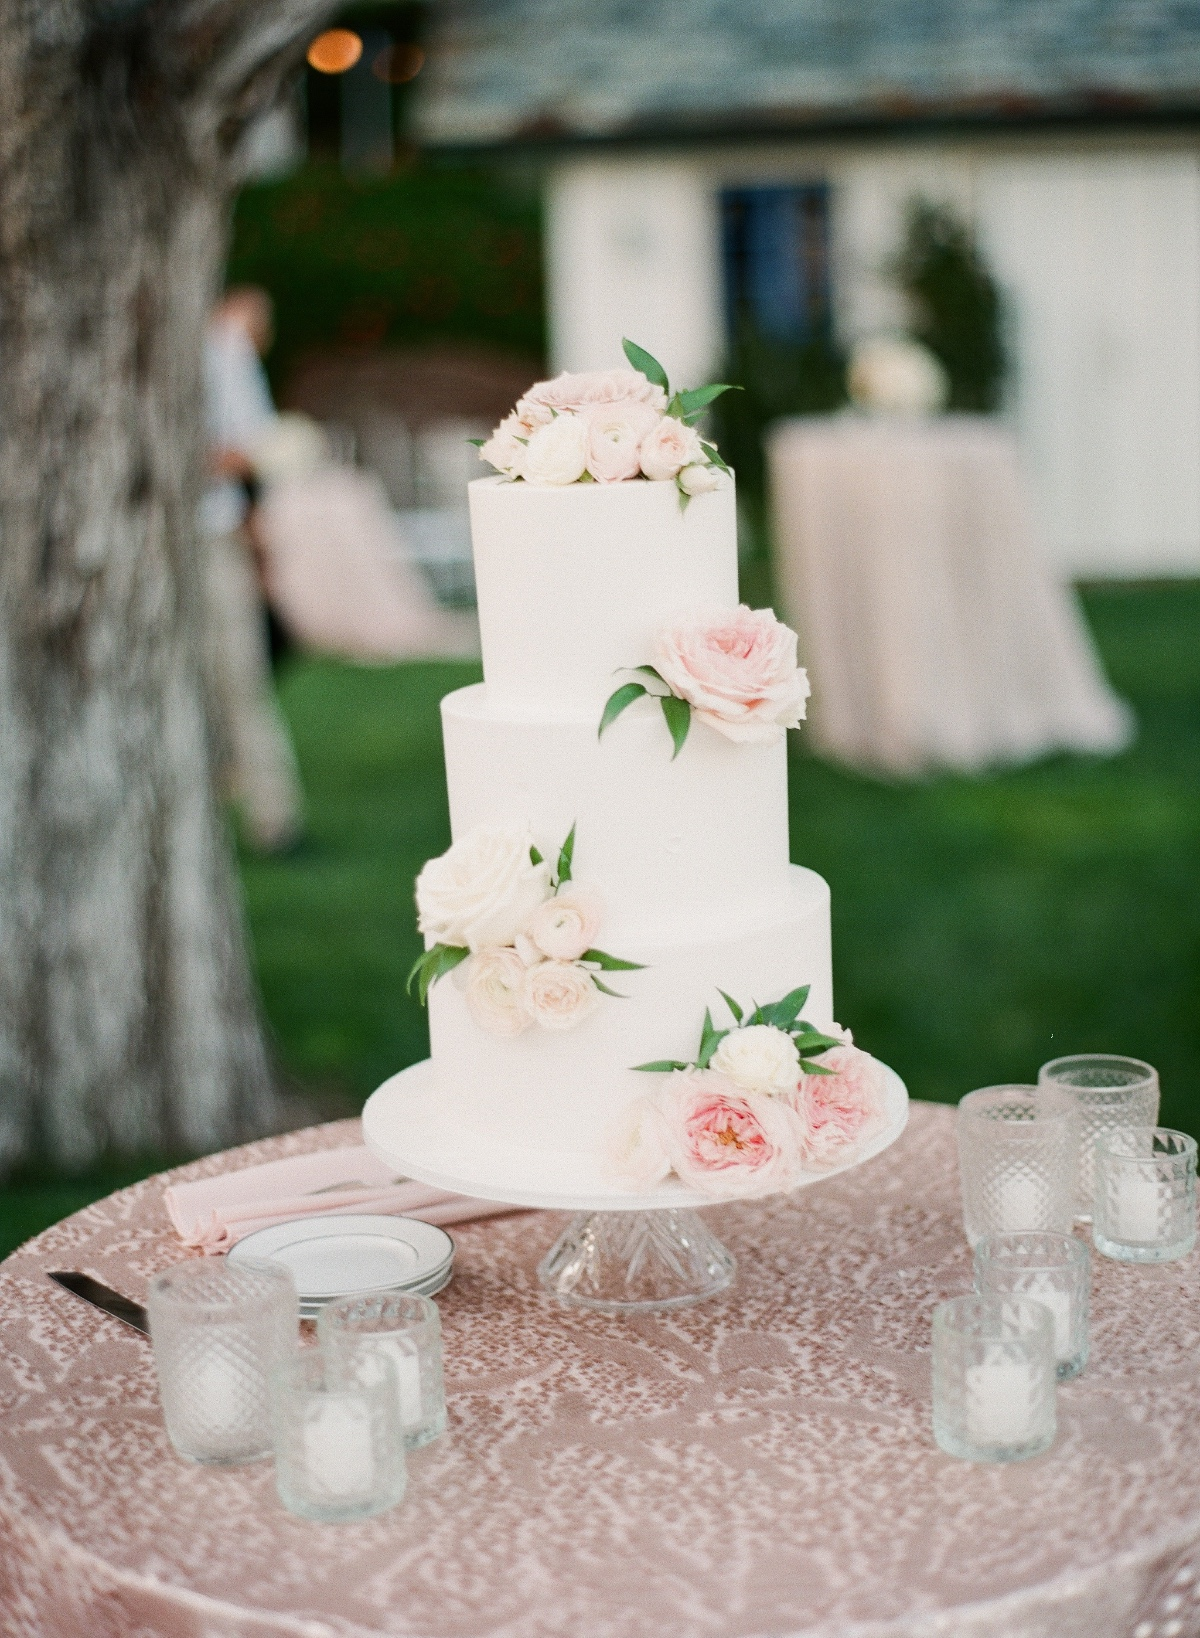 white wedding cake adorned with pink flowers